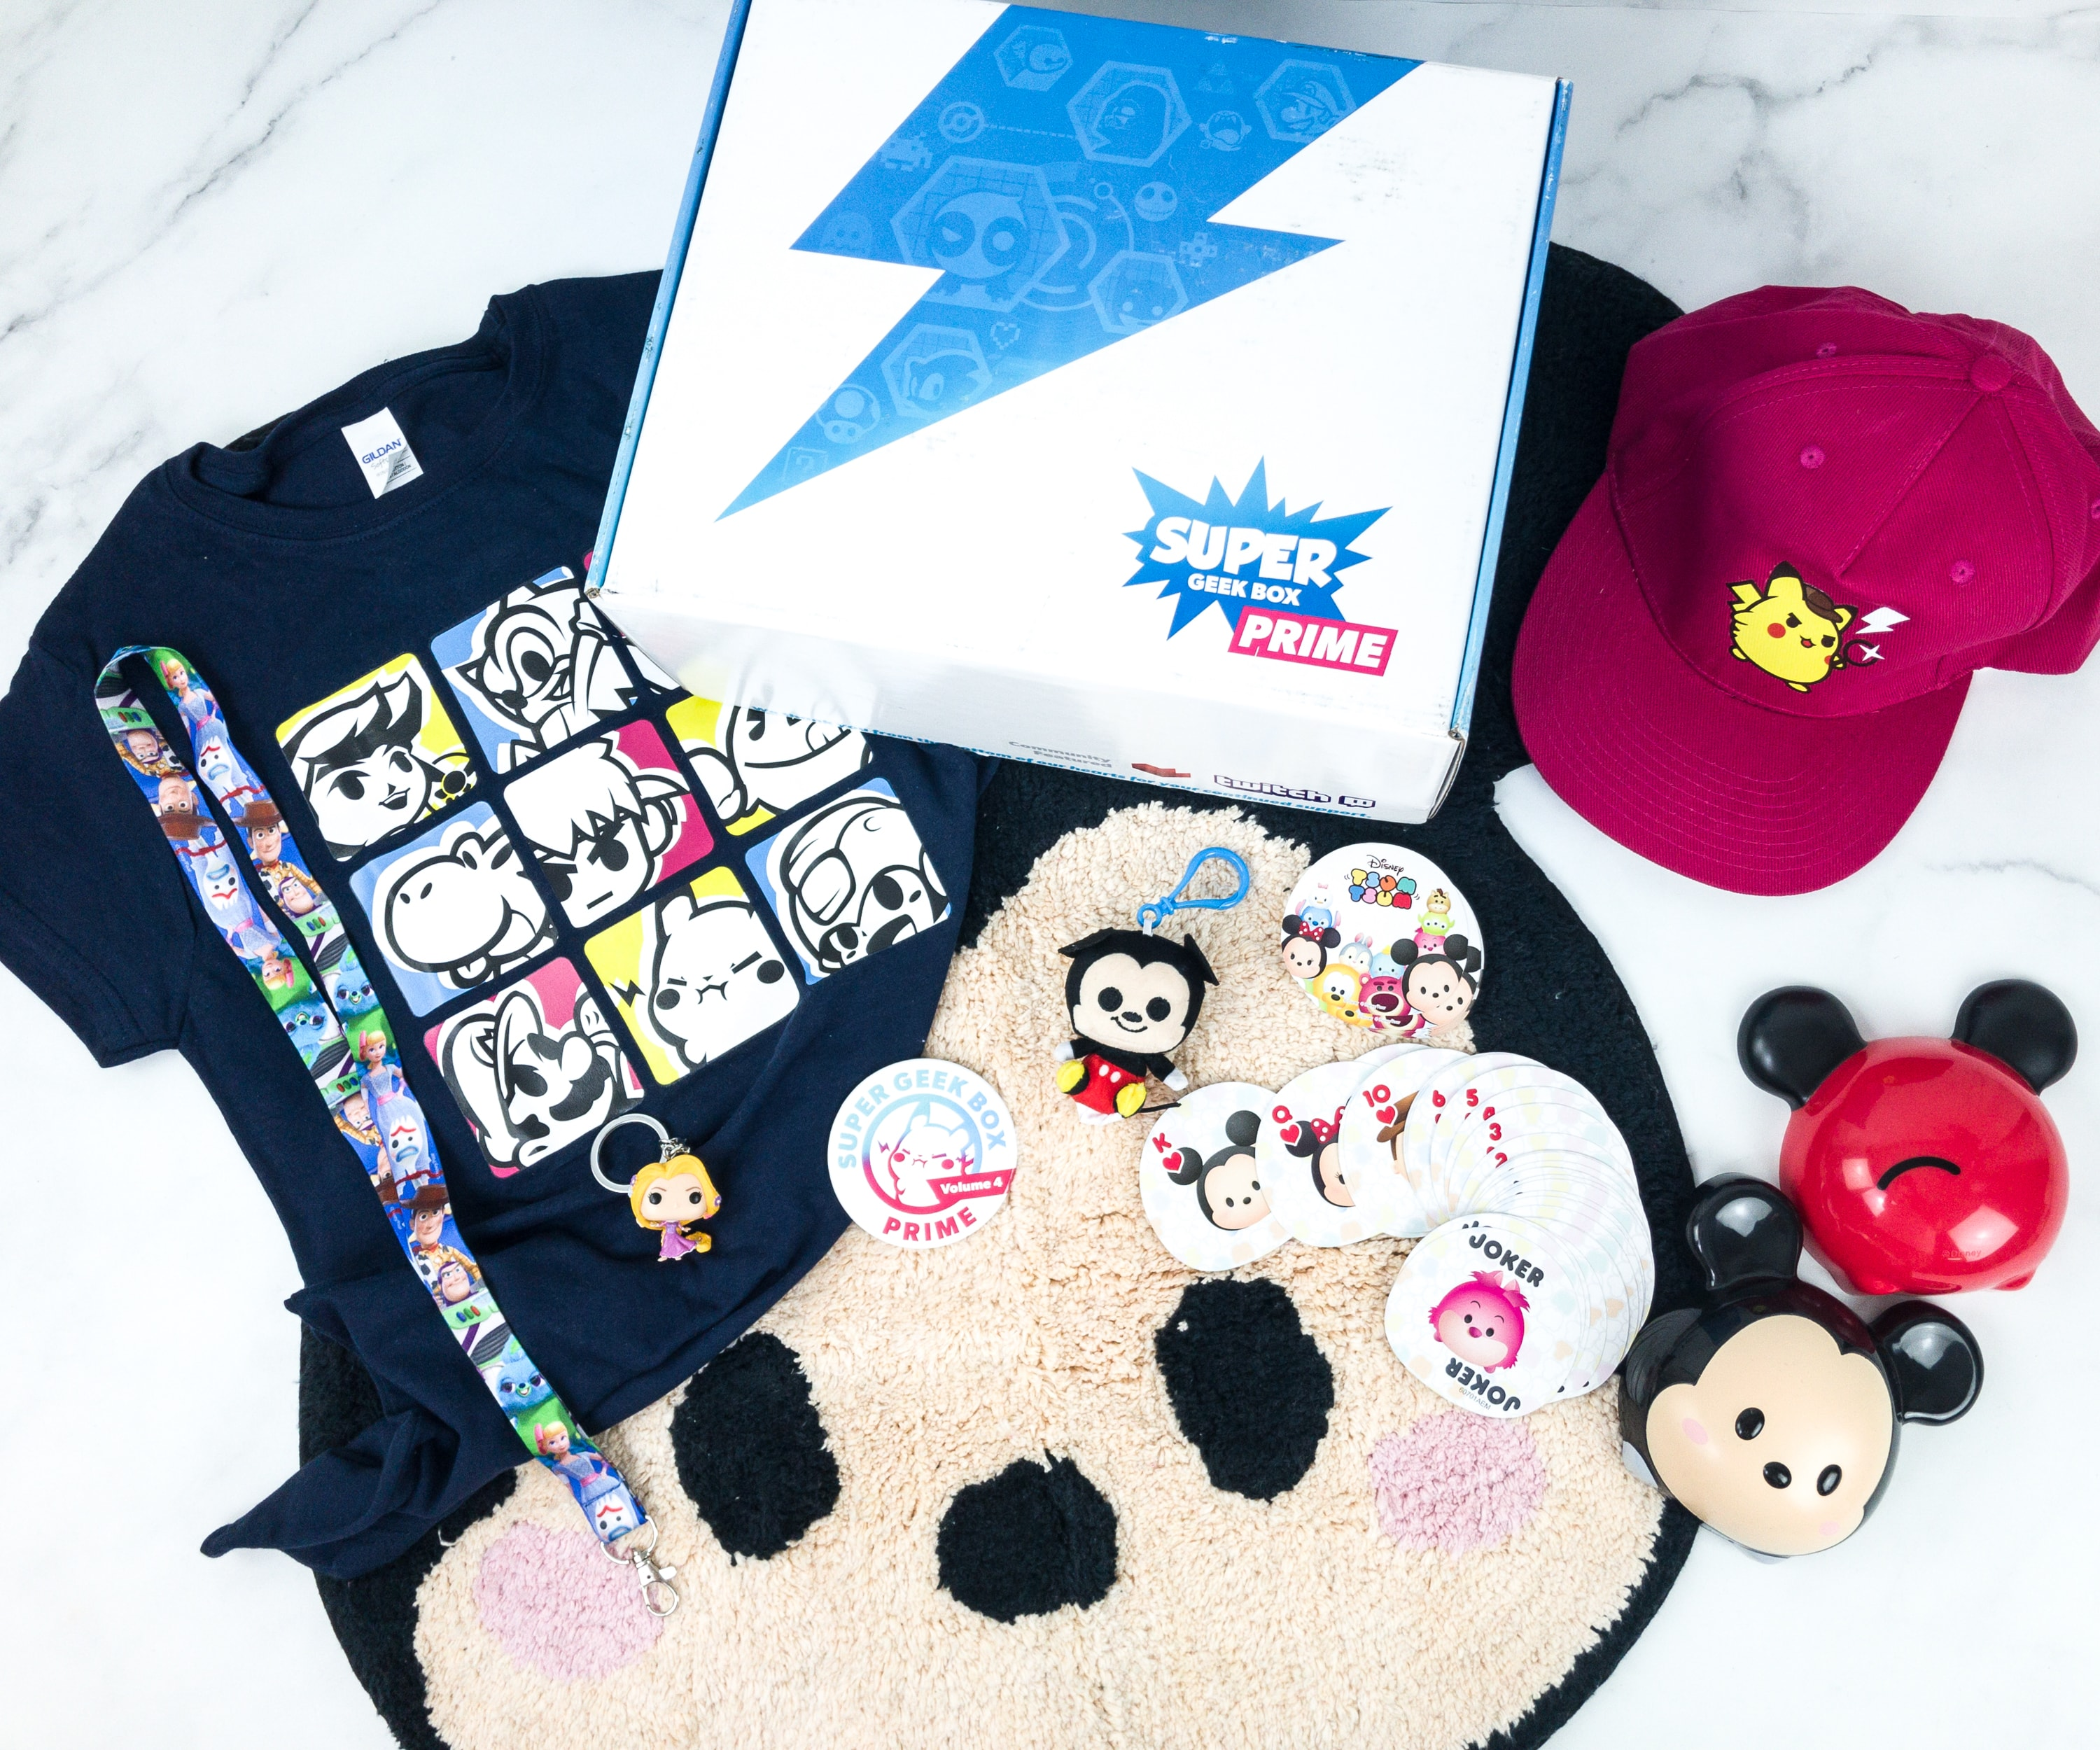 Super Geek Box PRIME Summer 2019 Subscription Box Review + Coupon